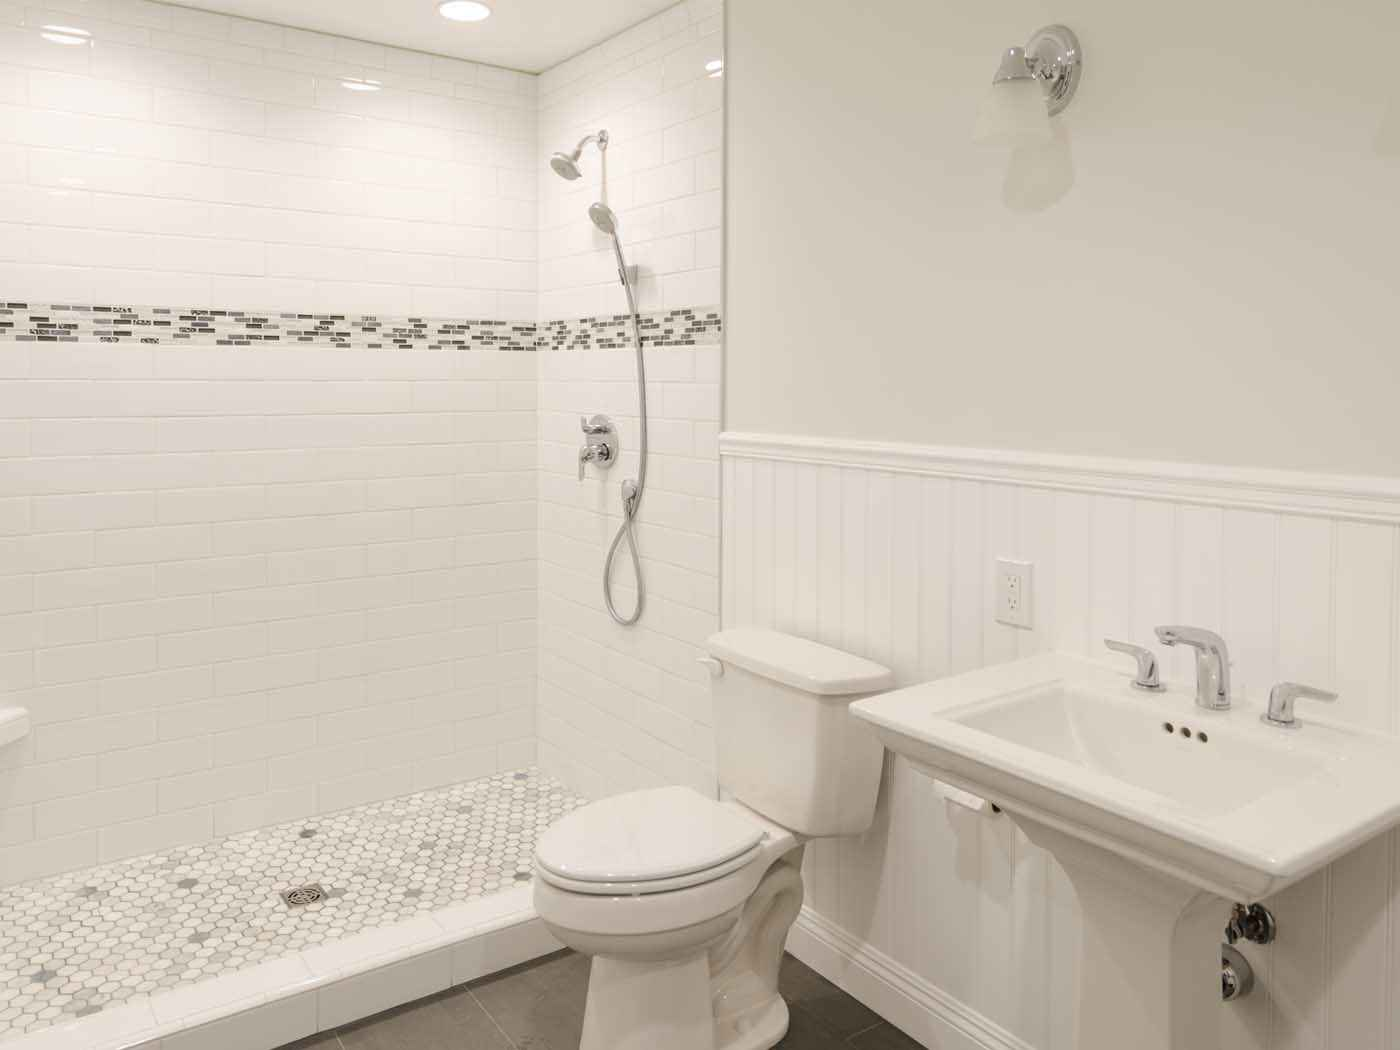 White ceramic bathroom wall tiles | BELK Tile